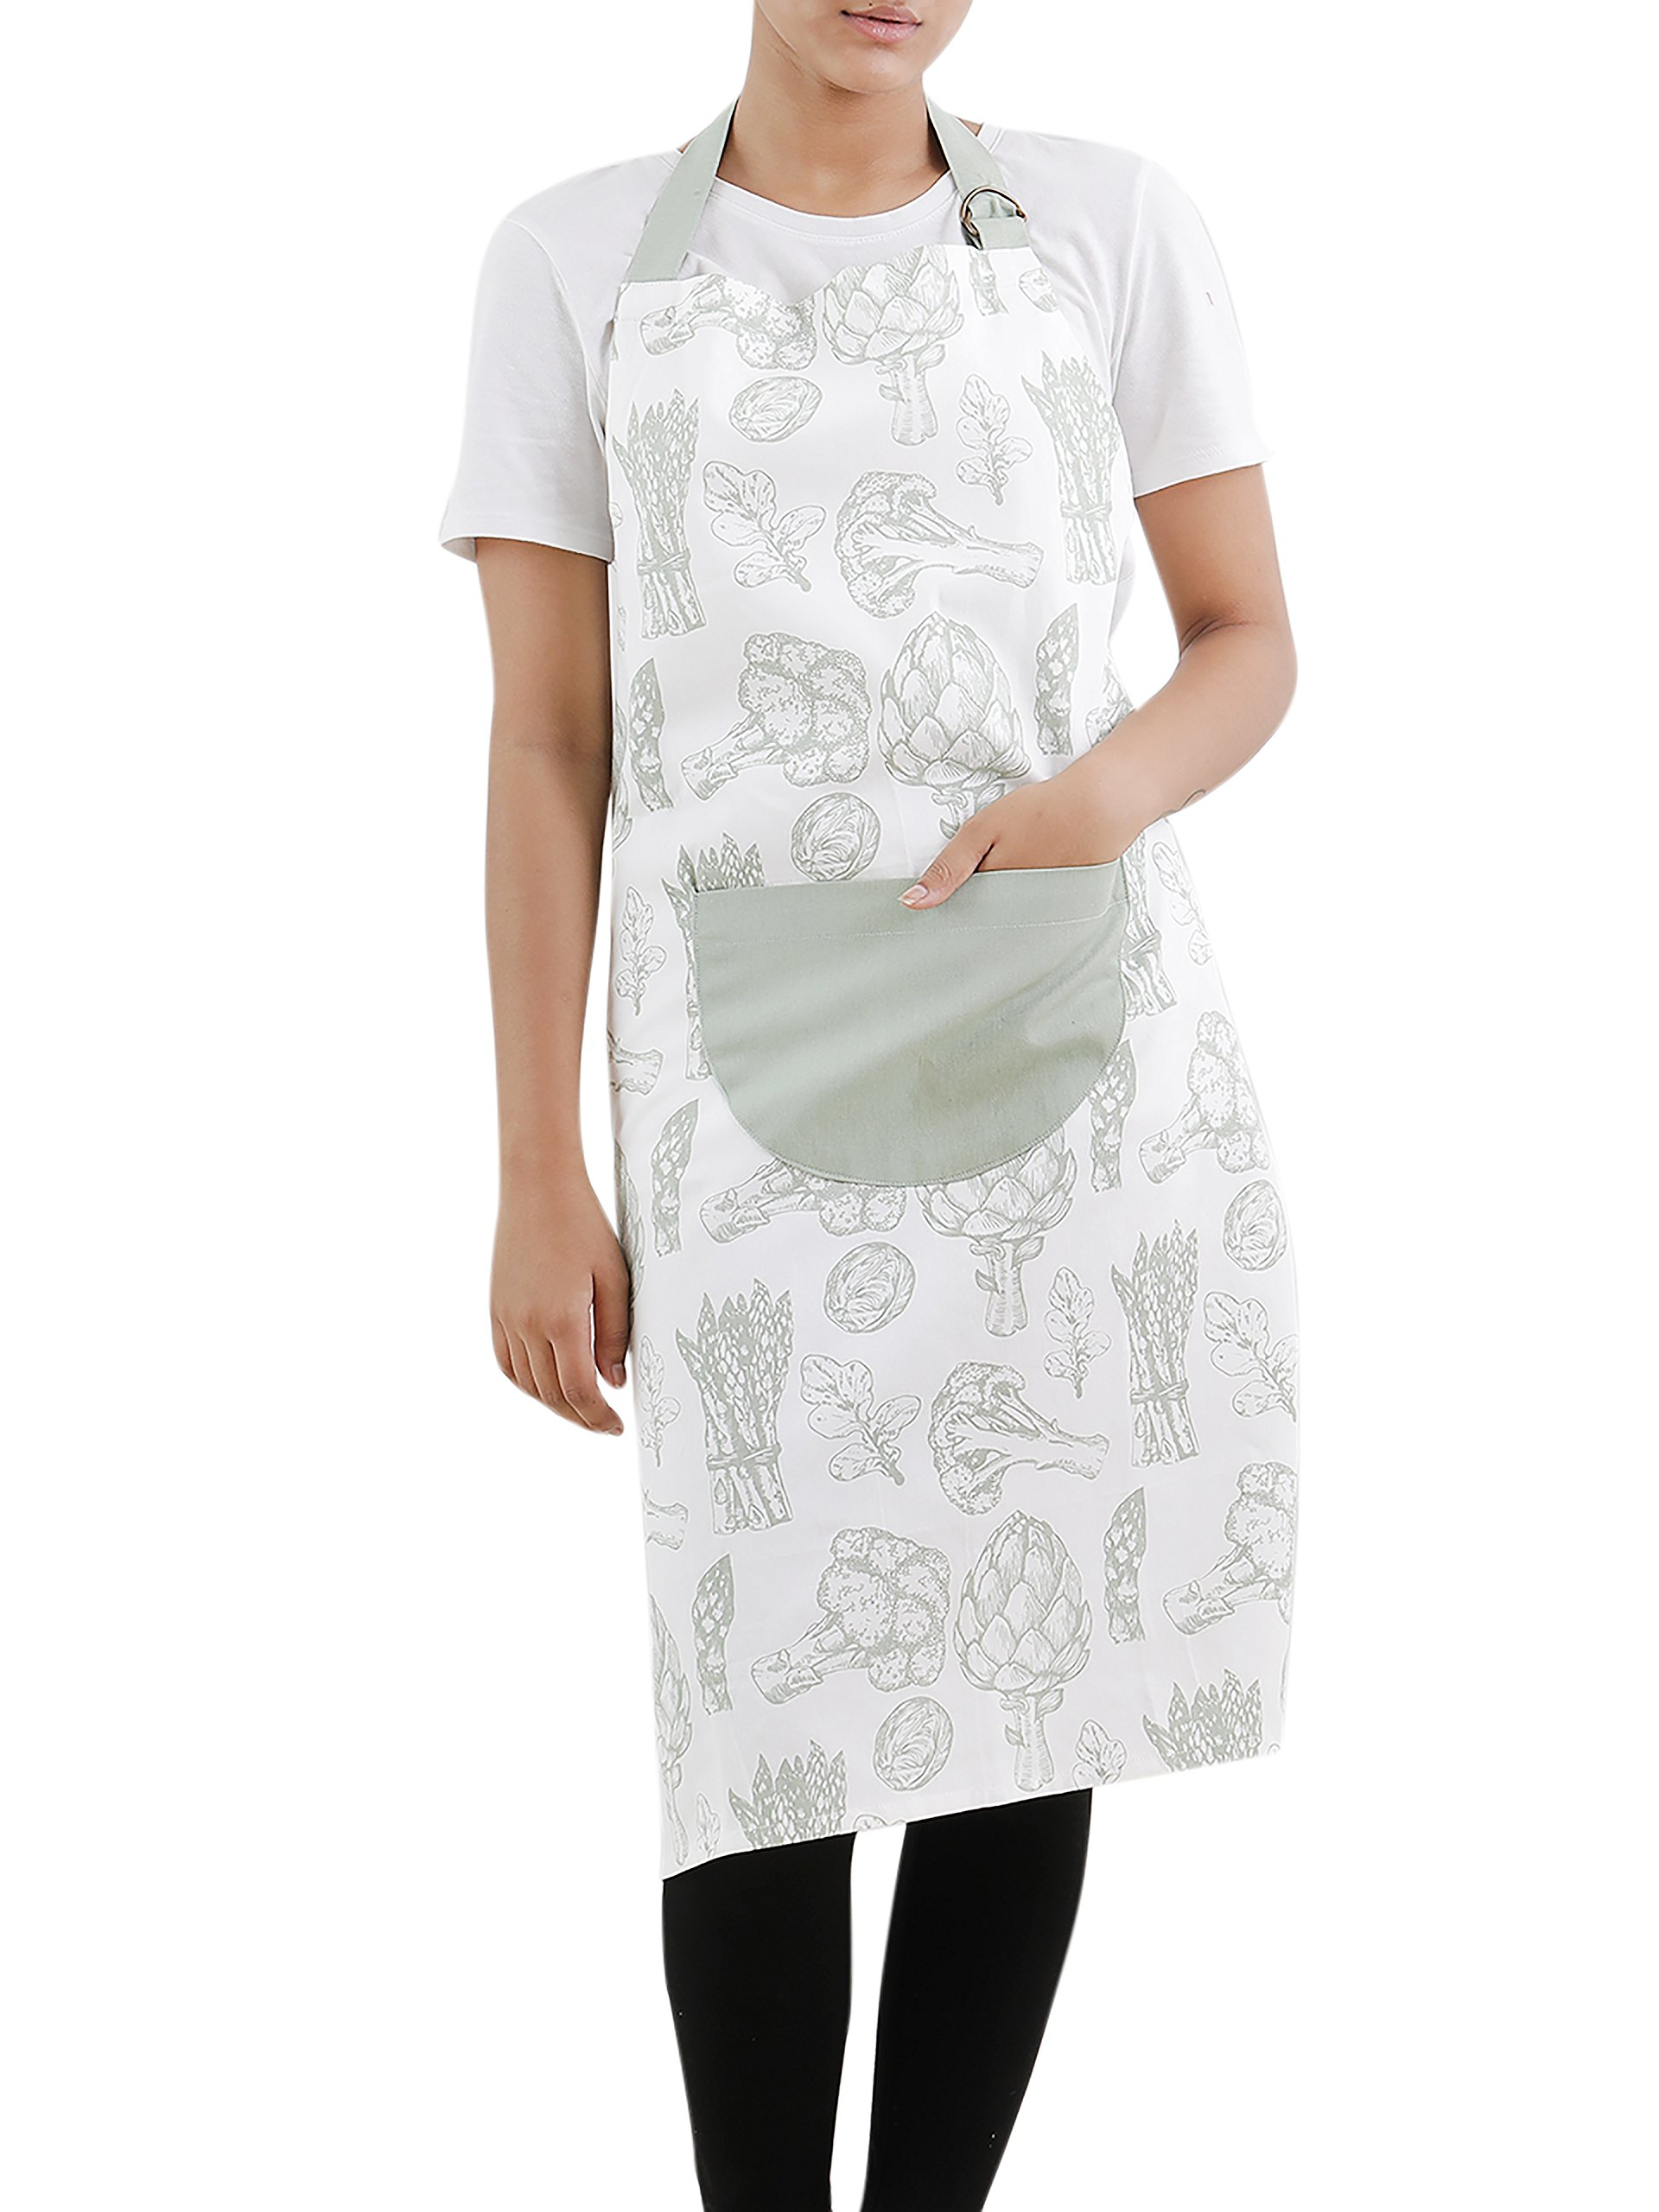 Apron, 100% Cotton, Kitchen Apron for Women & Men, Printed Apron with Pockets, Eco Friendly and Safe, Elegant in Wearing, Unisex, Green Color for all Kitchens, Size 32 X 36 Inch